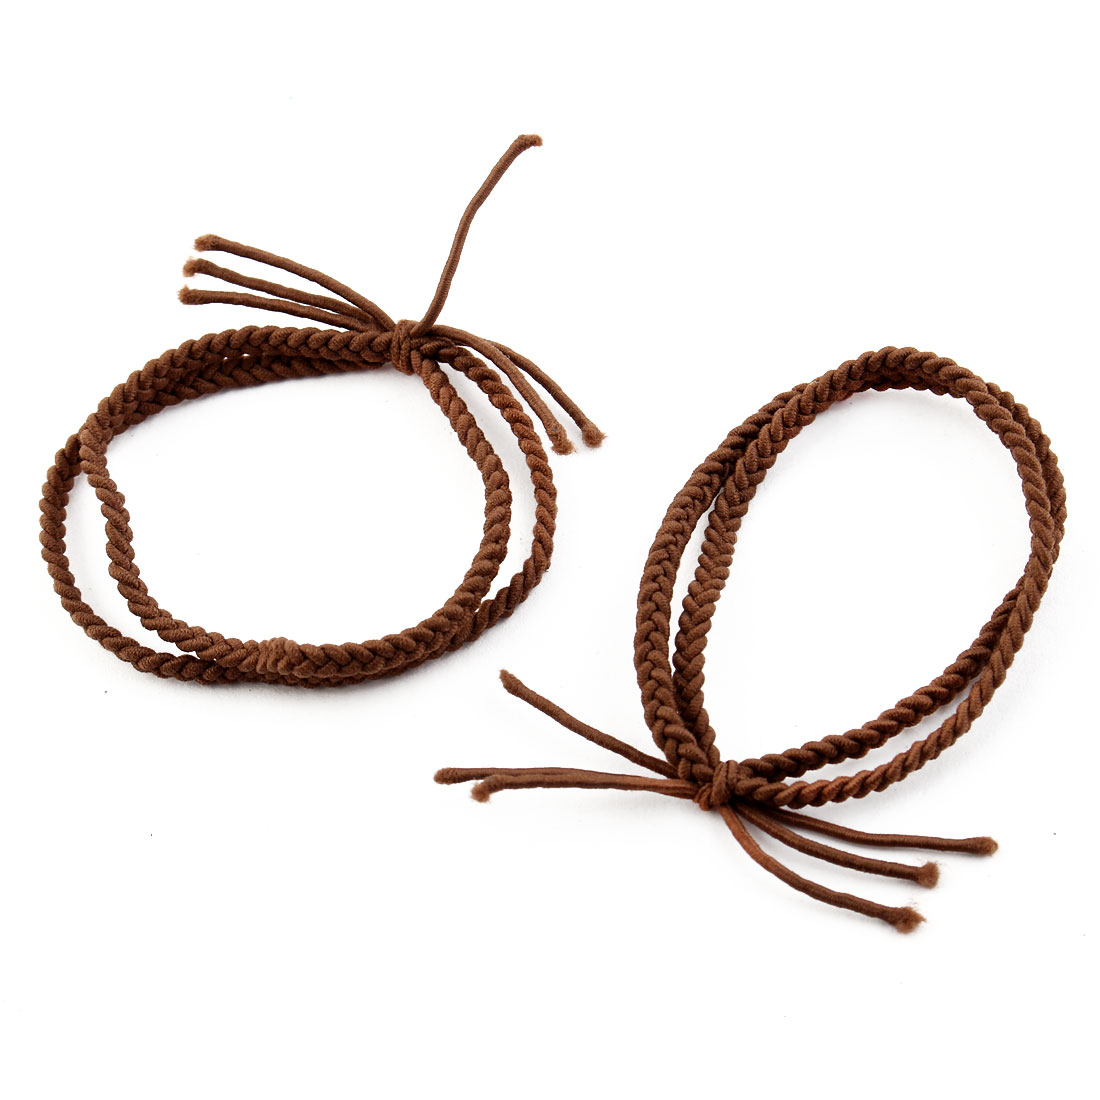 Girl Elastic Rubber Hair Tie Rope Ring Band Haristyle Maker Holder Brown 2 Pcs